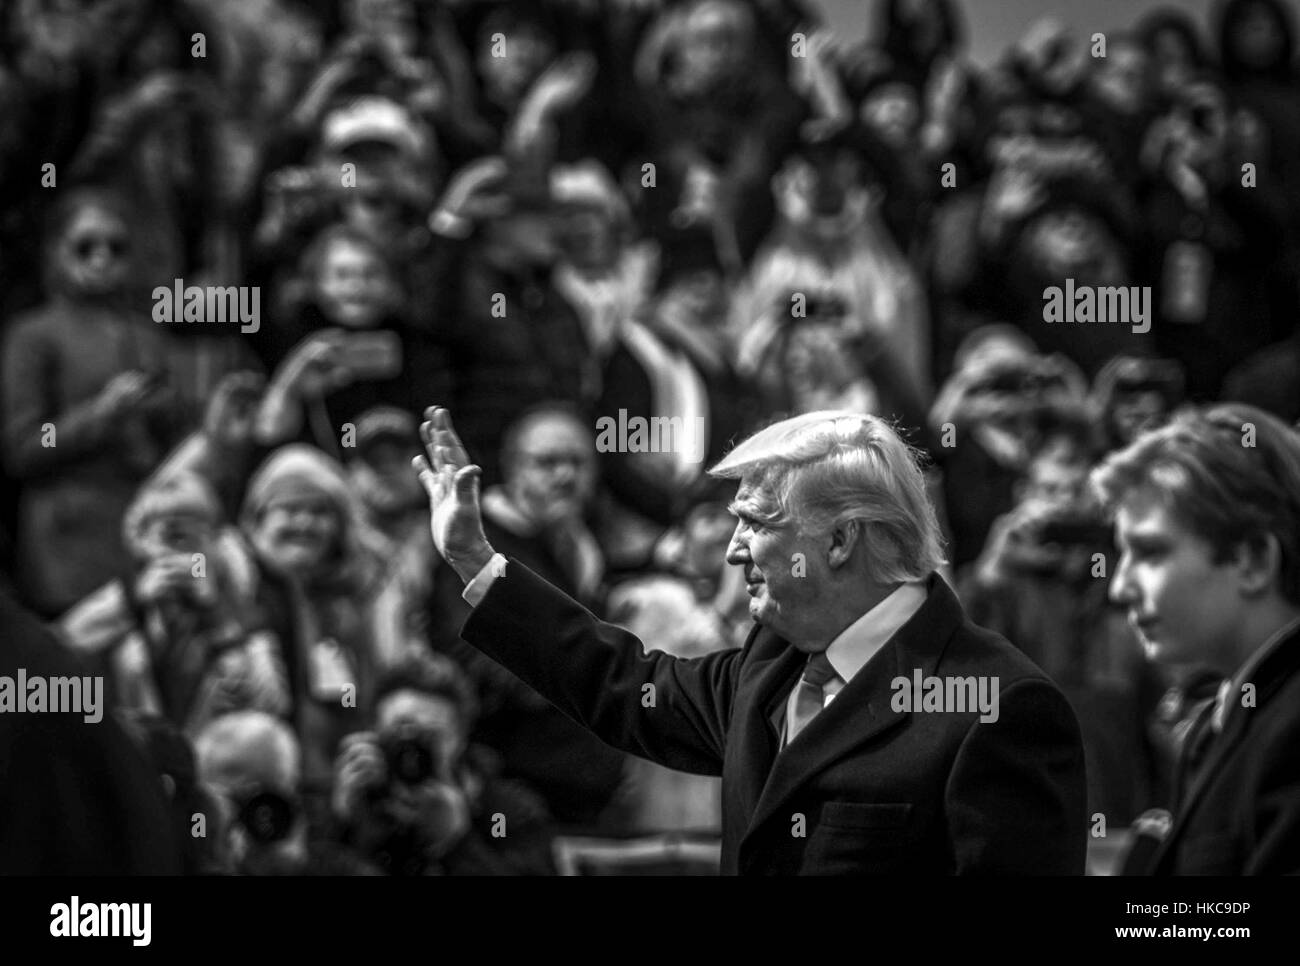 Black clear all filters page 1 of 5 u s president donald trump waves to the crowd during the 58th presidential inauguration january 20